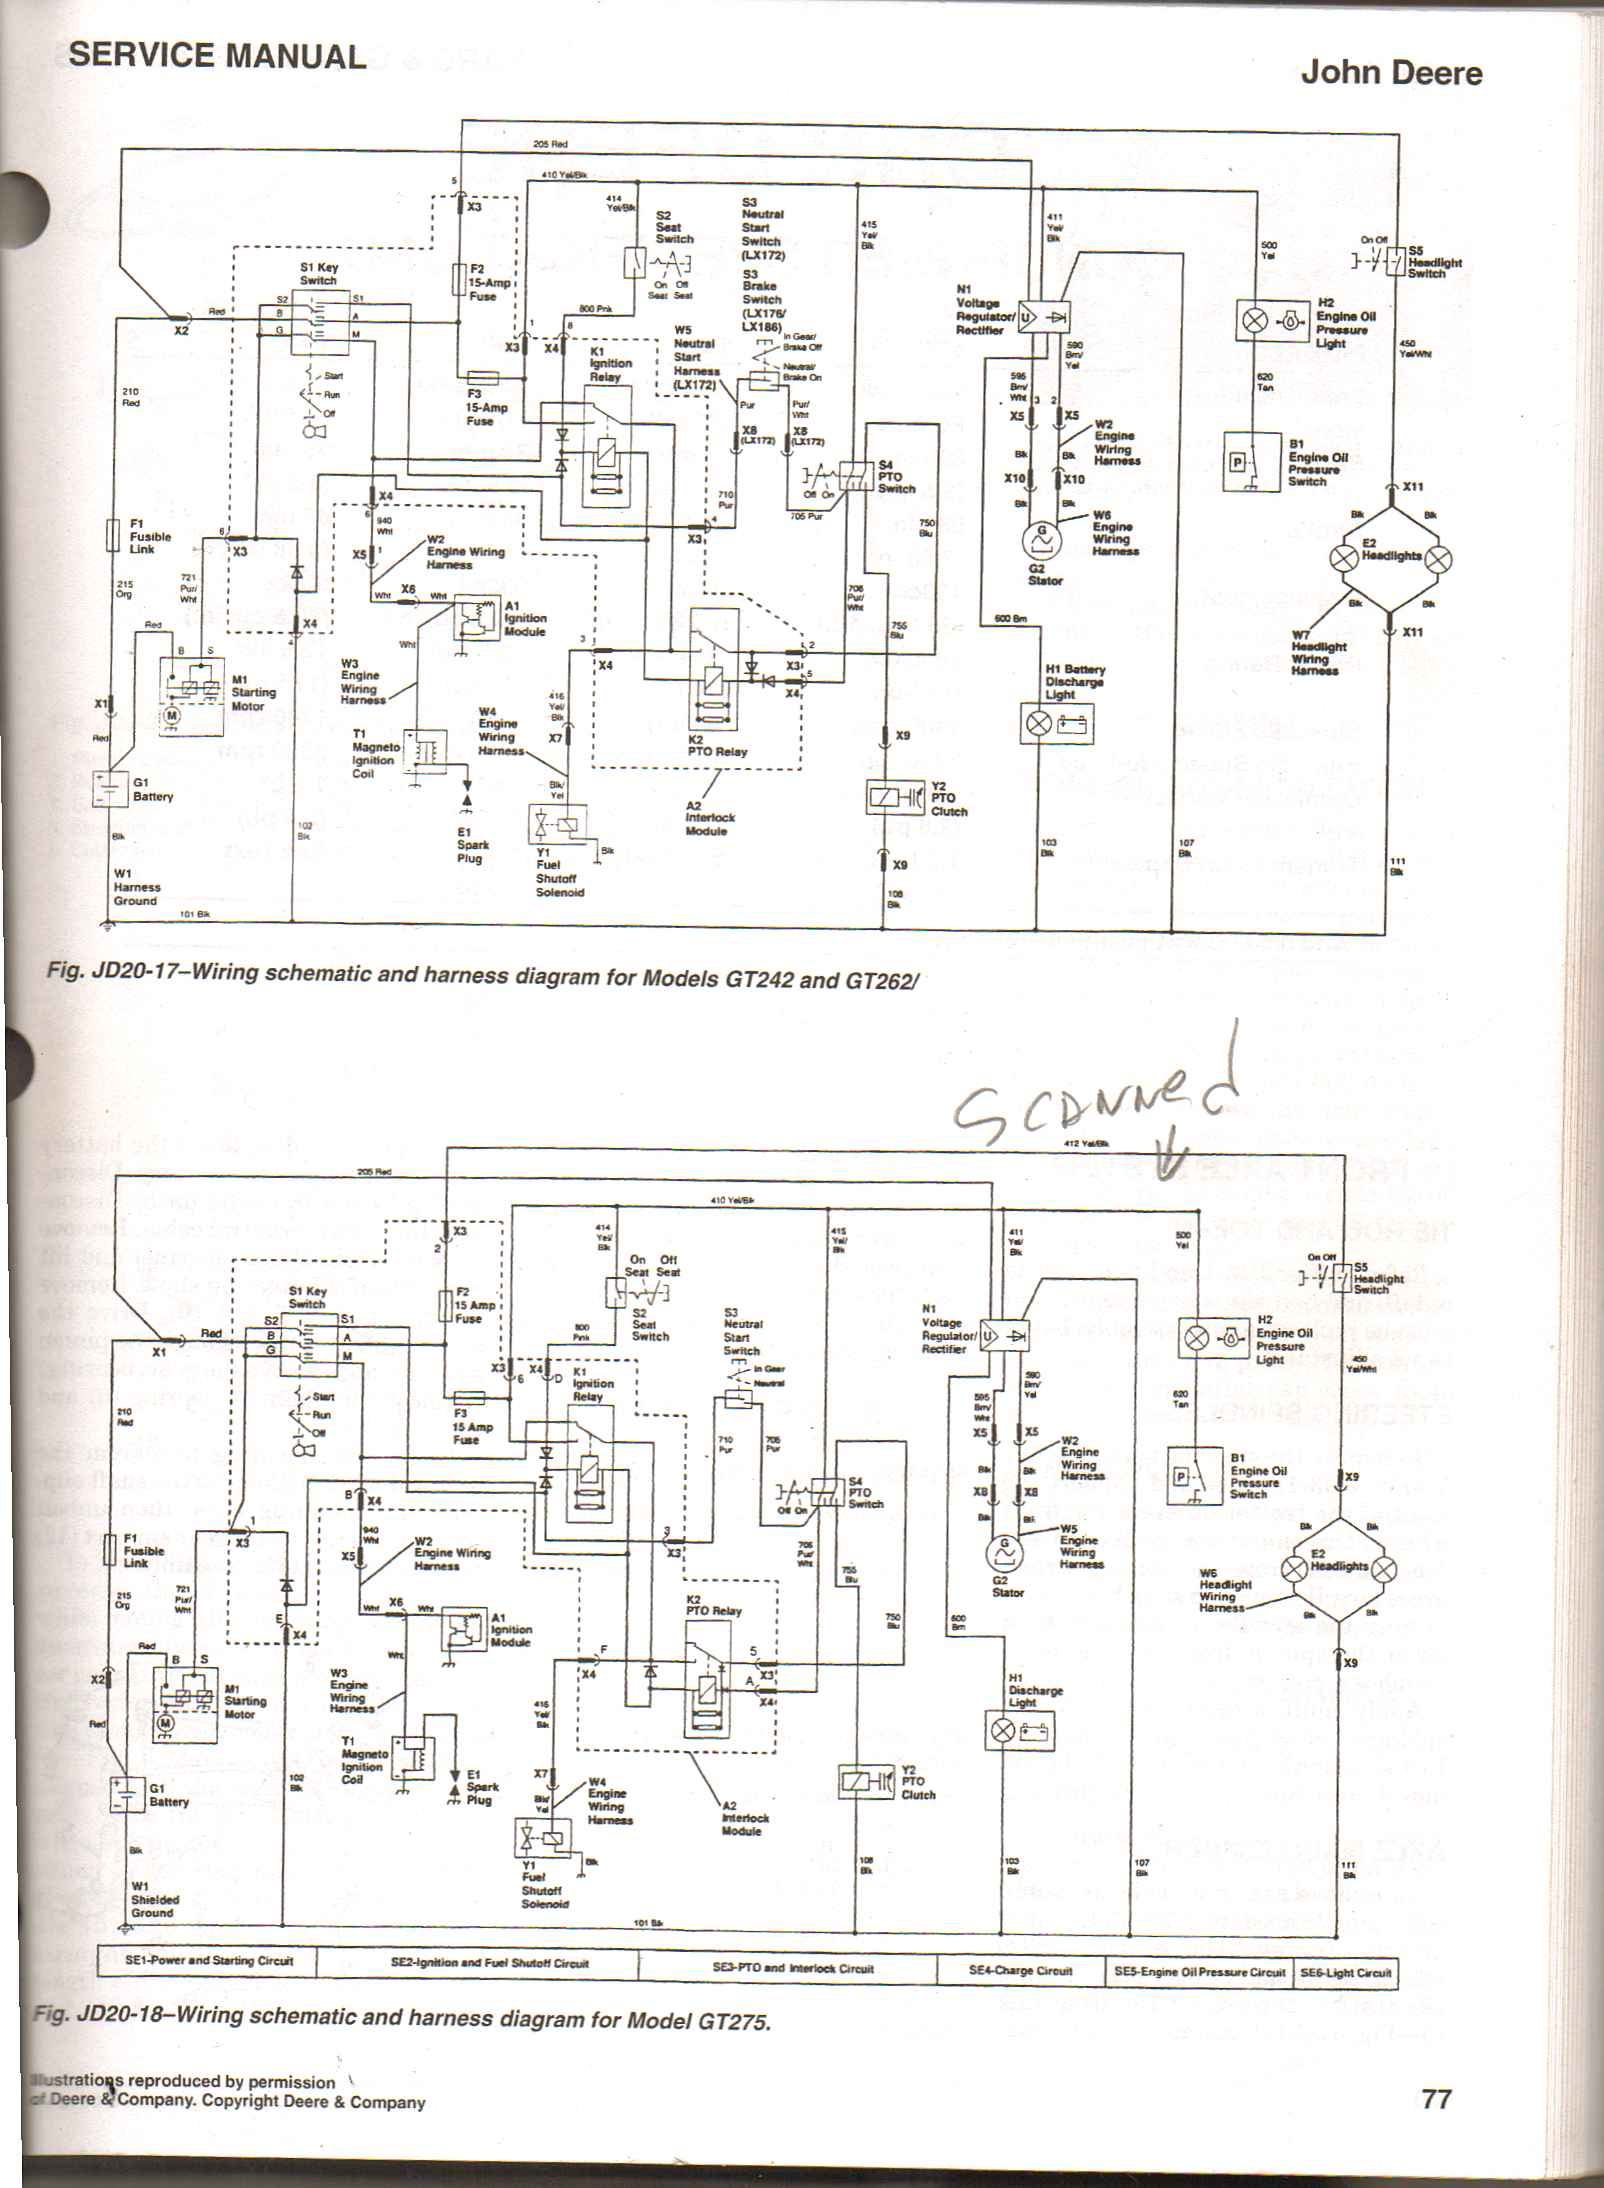 Wiring Diagram John Deere Gt275 : Cat oil pressure switch location get free image about